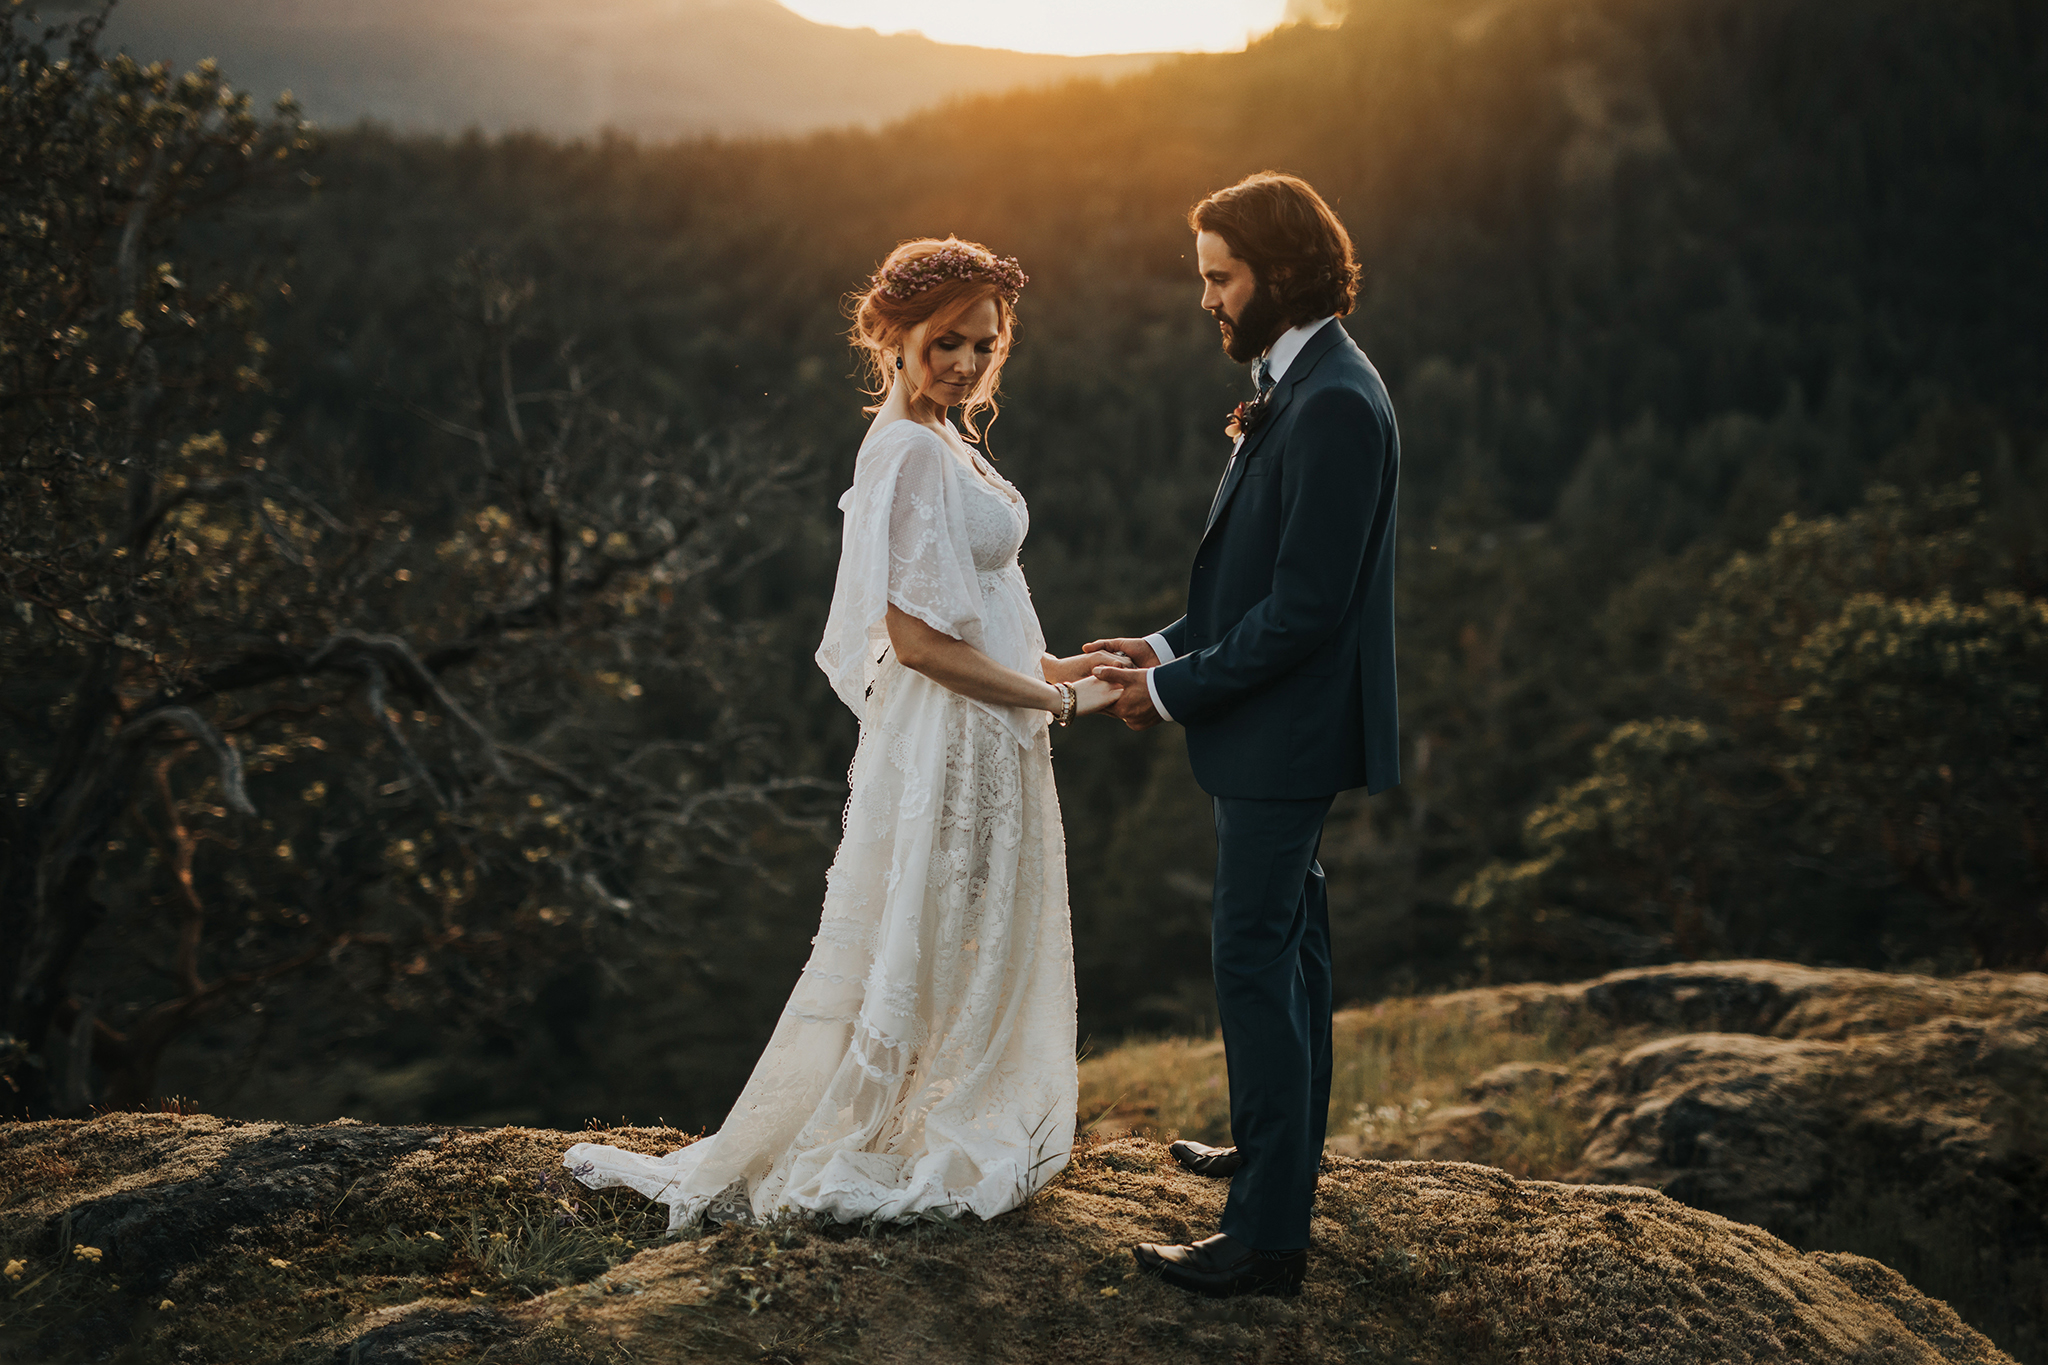 Myrtle and Moss Photography, Styled Mountaintop Elopement, Victoria BC Wedding Photographer, Lone Tree Hill